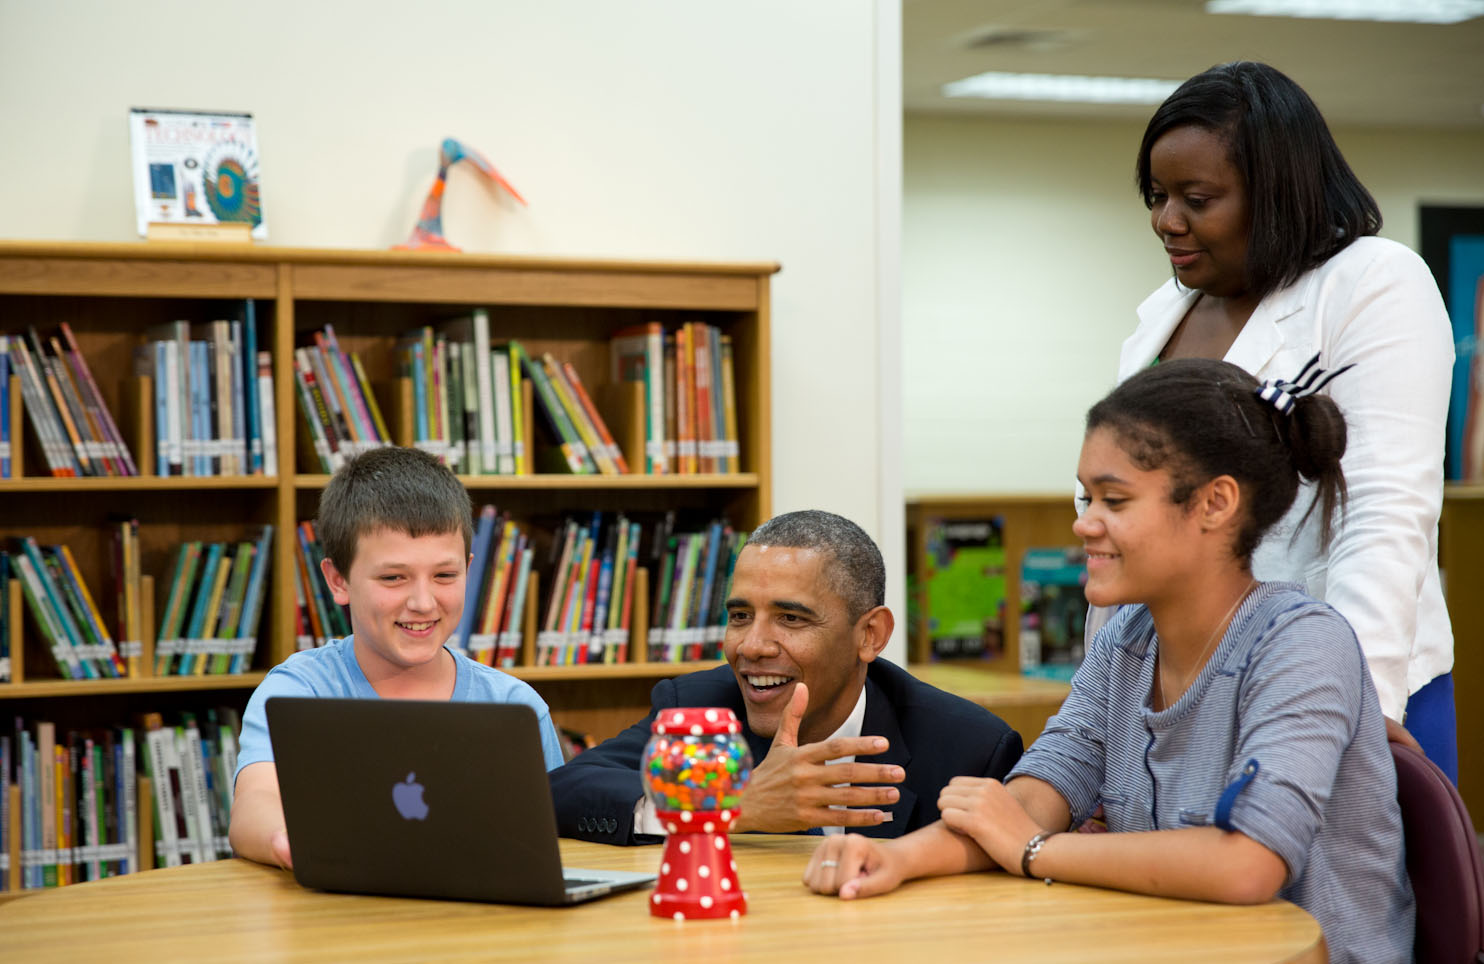 President Barack Obama views student projects created on laptops during a tour at Mooresville Middle School